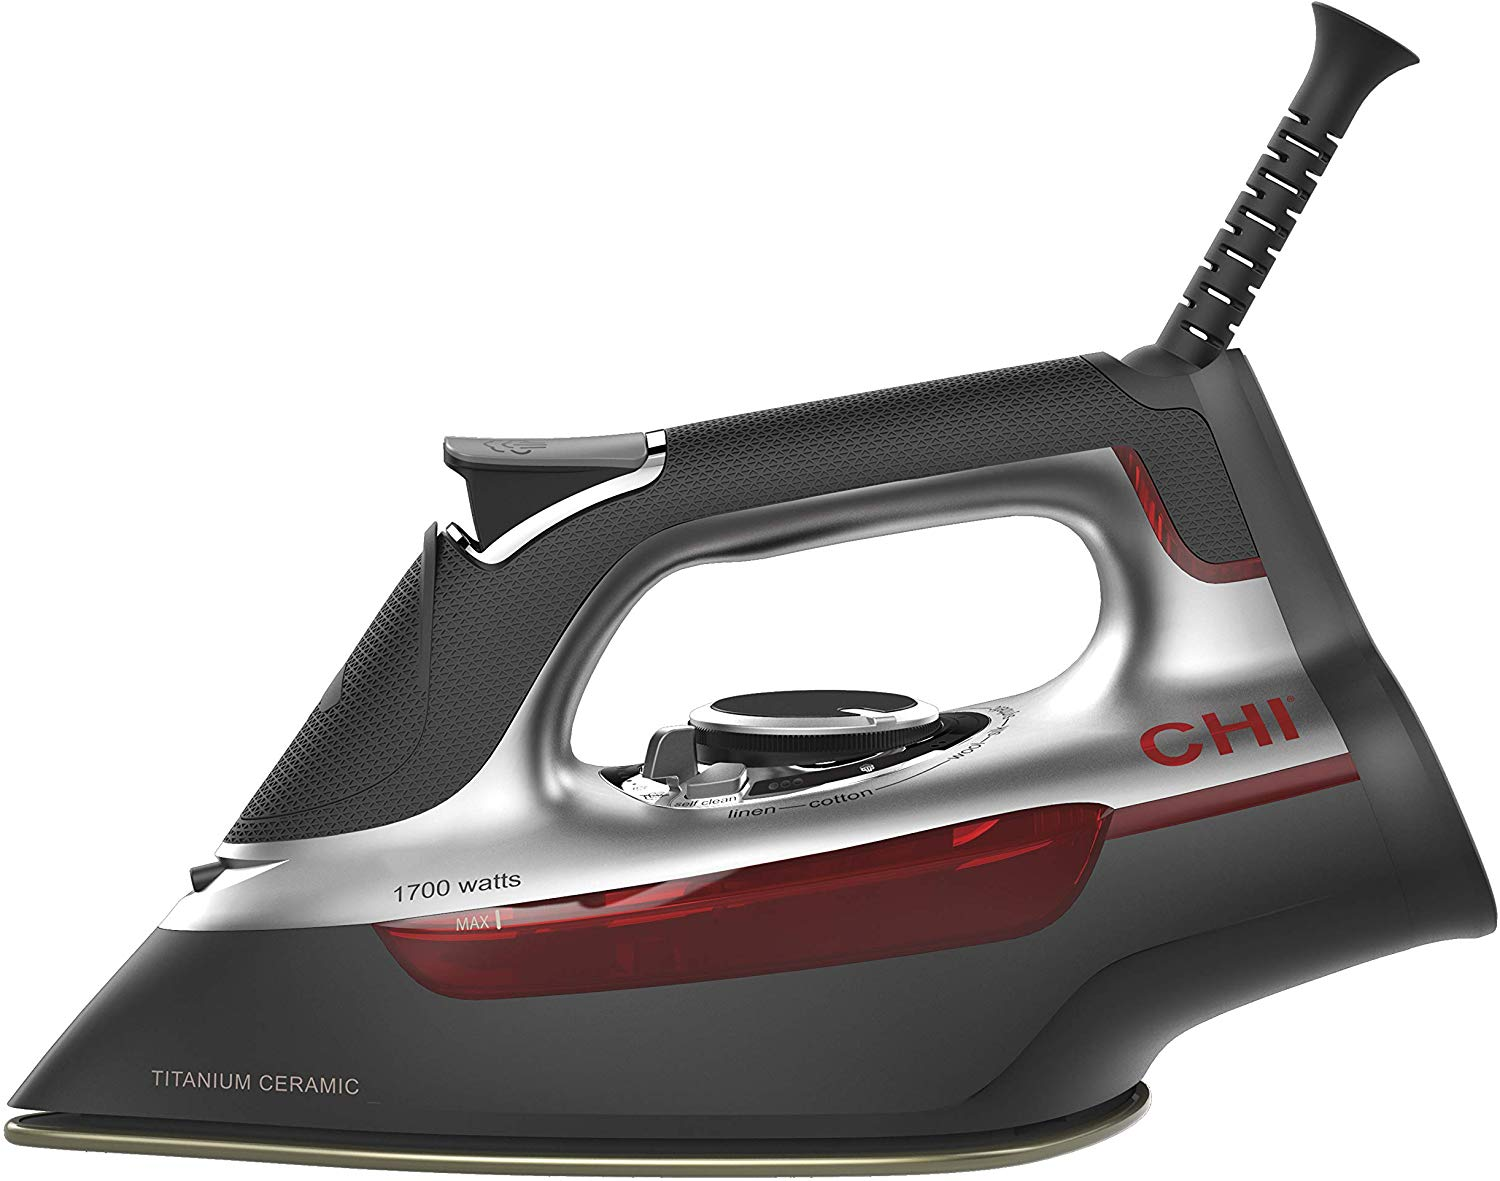 chi steam iron 13101 reviews